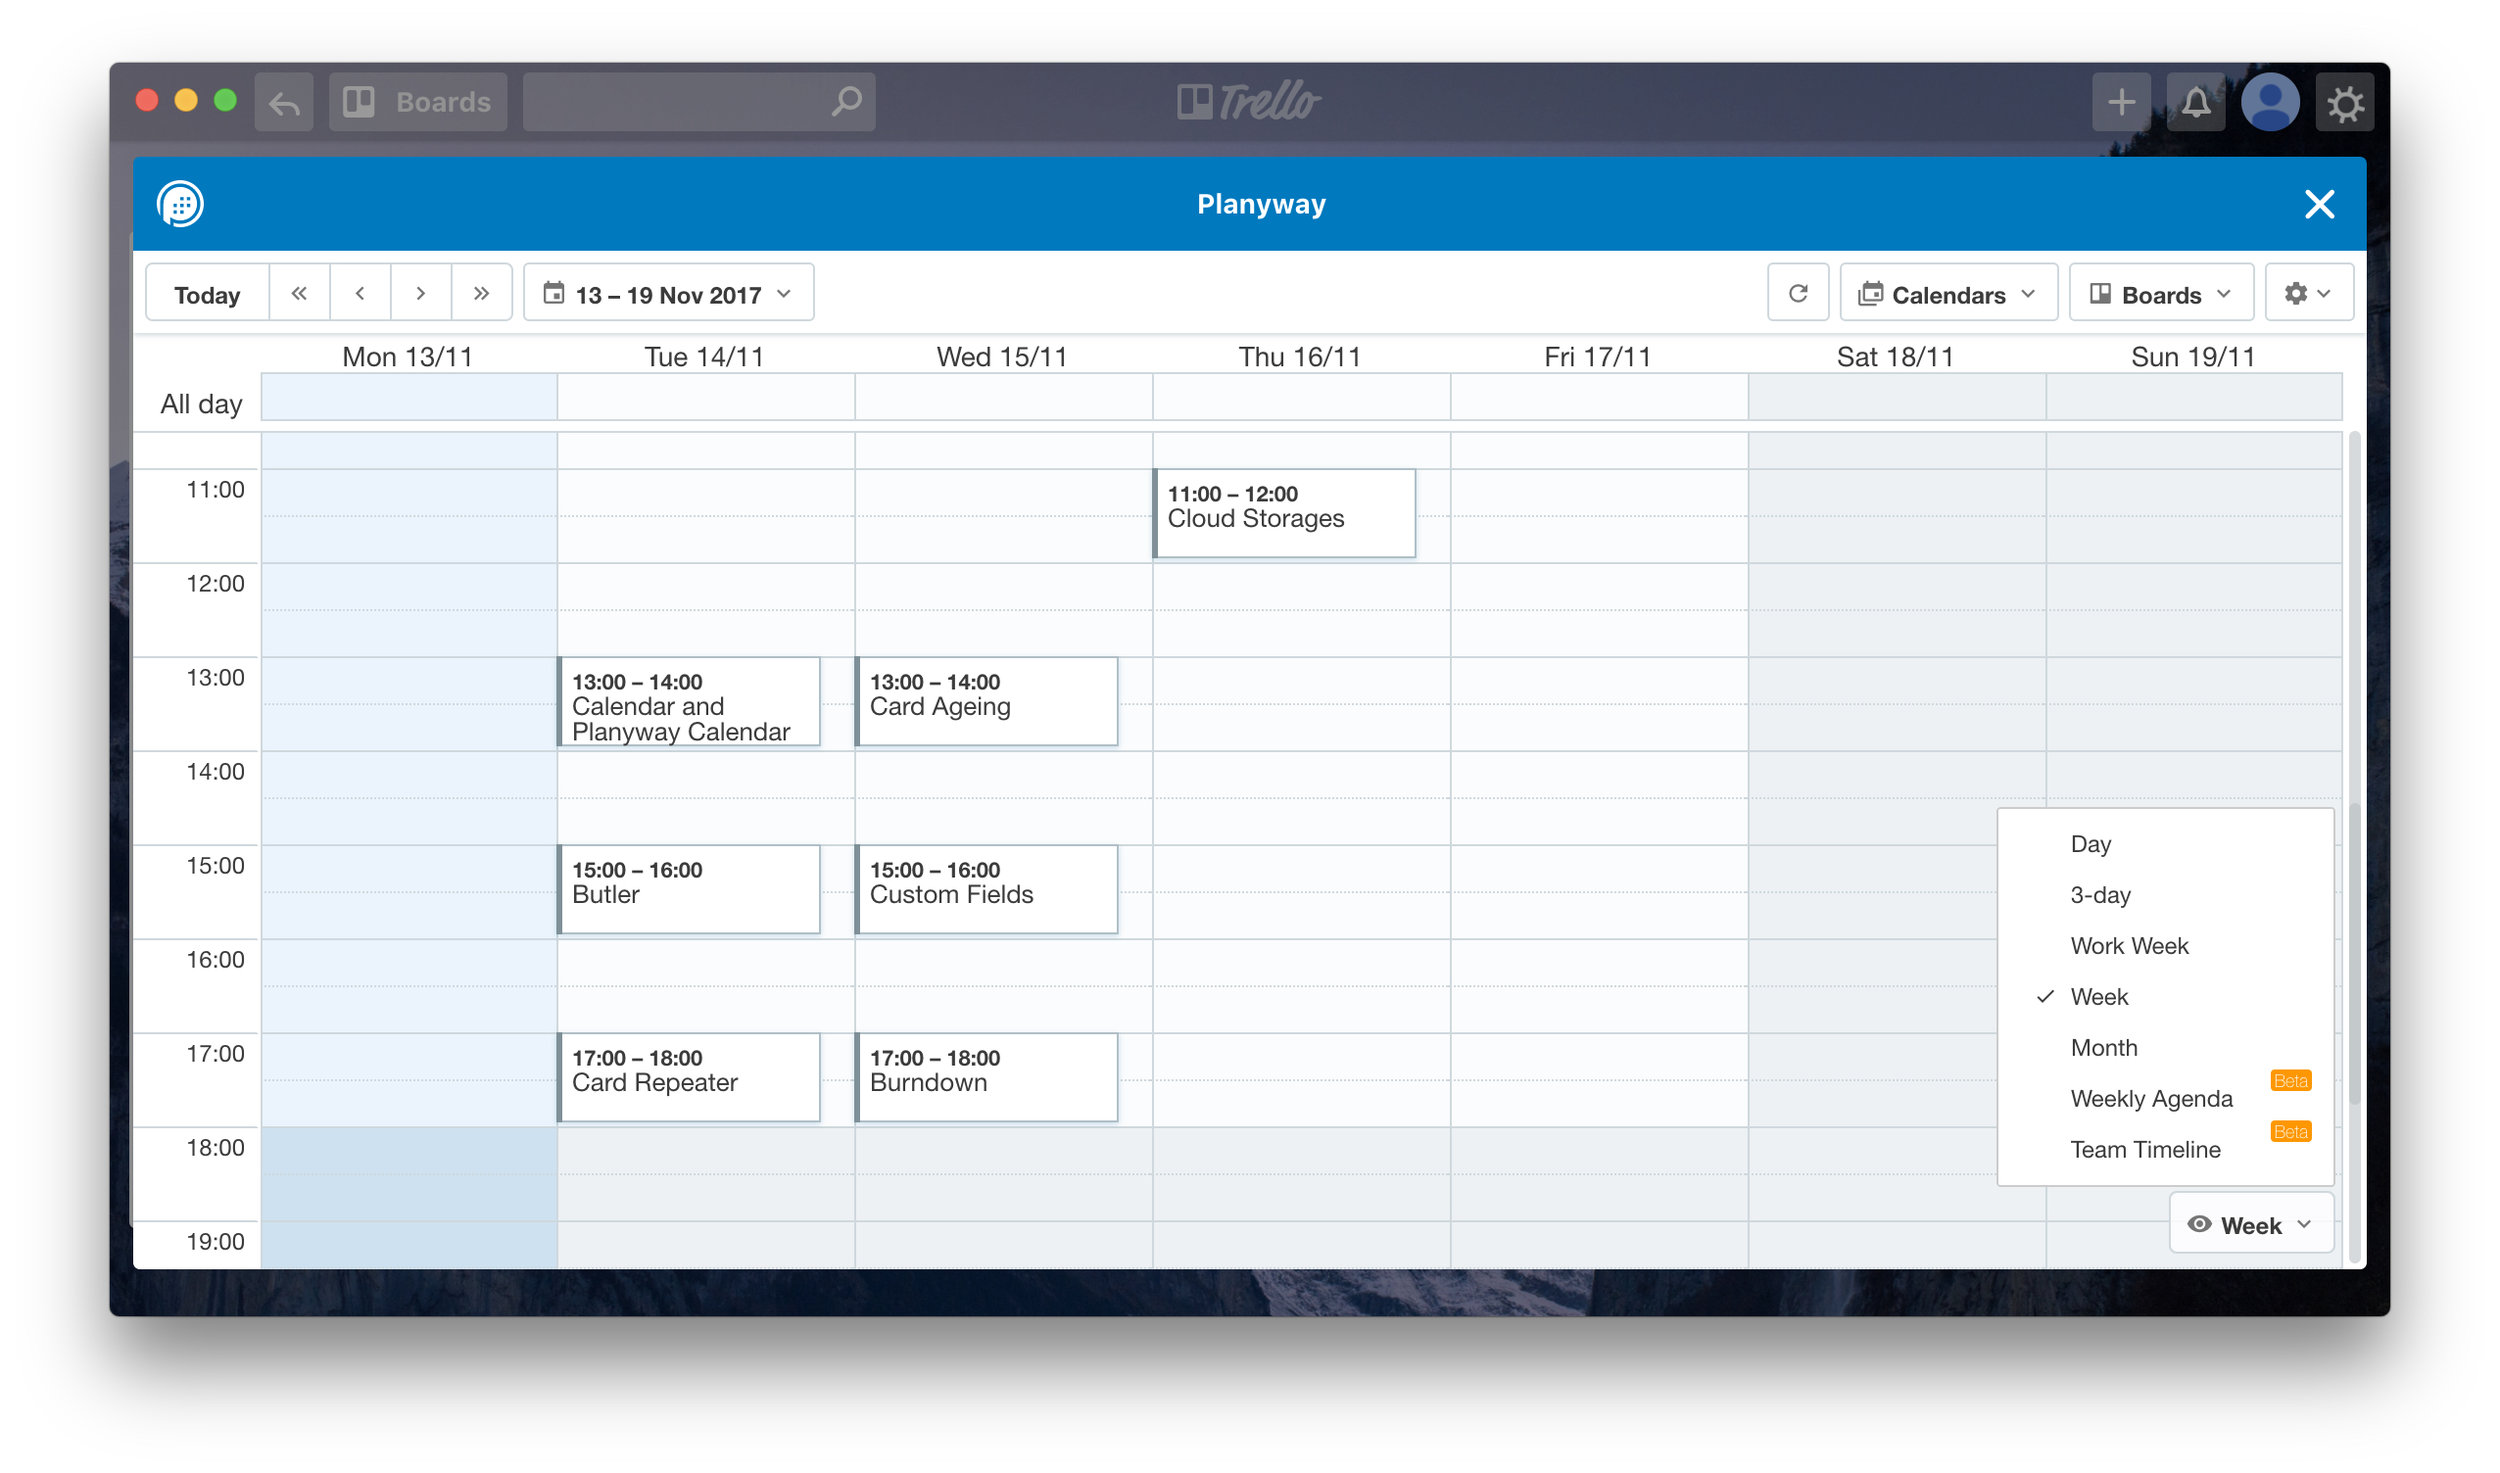 Trello Planyway Calendar Power-up